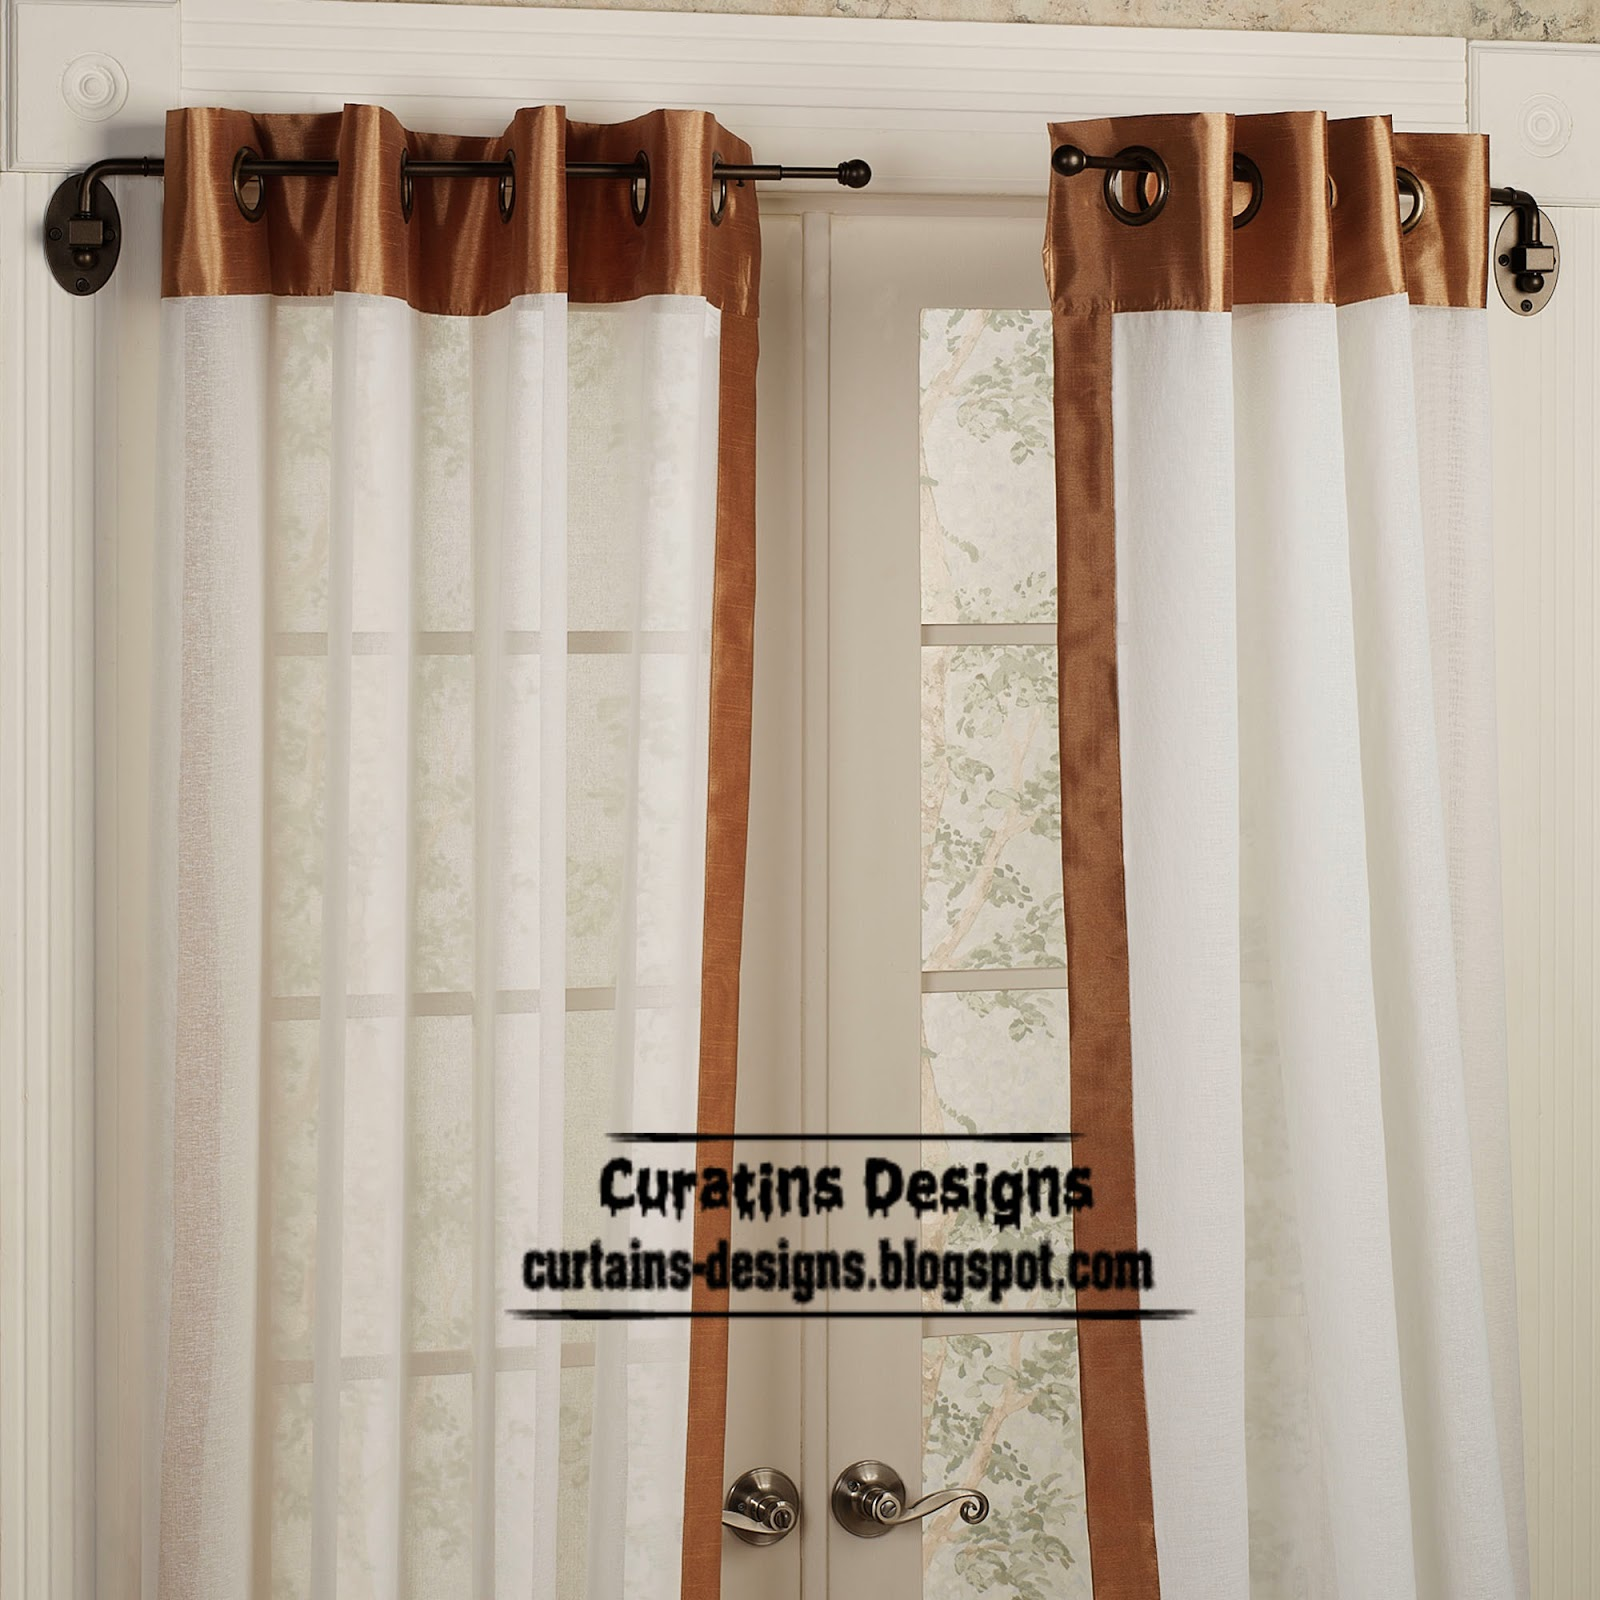 swing arm curtain rod, unique window covering ideas